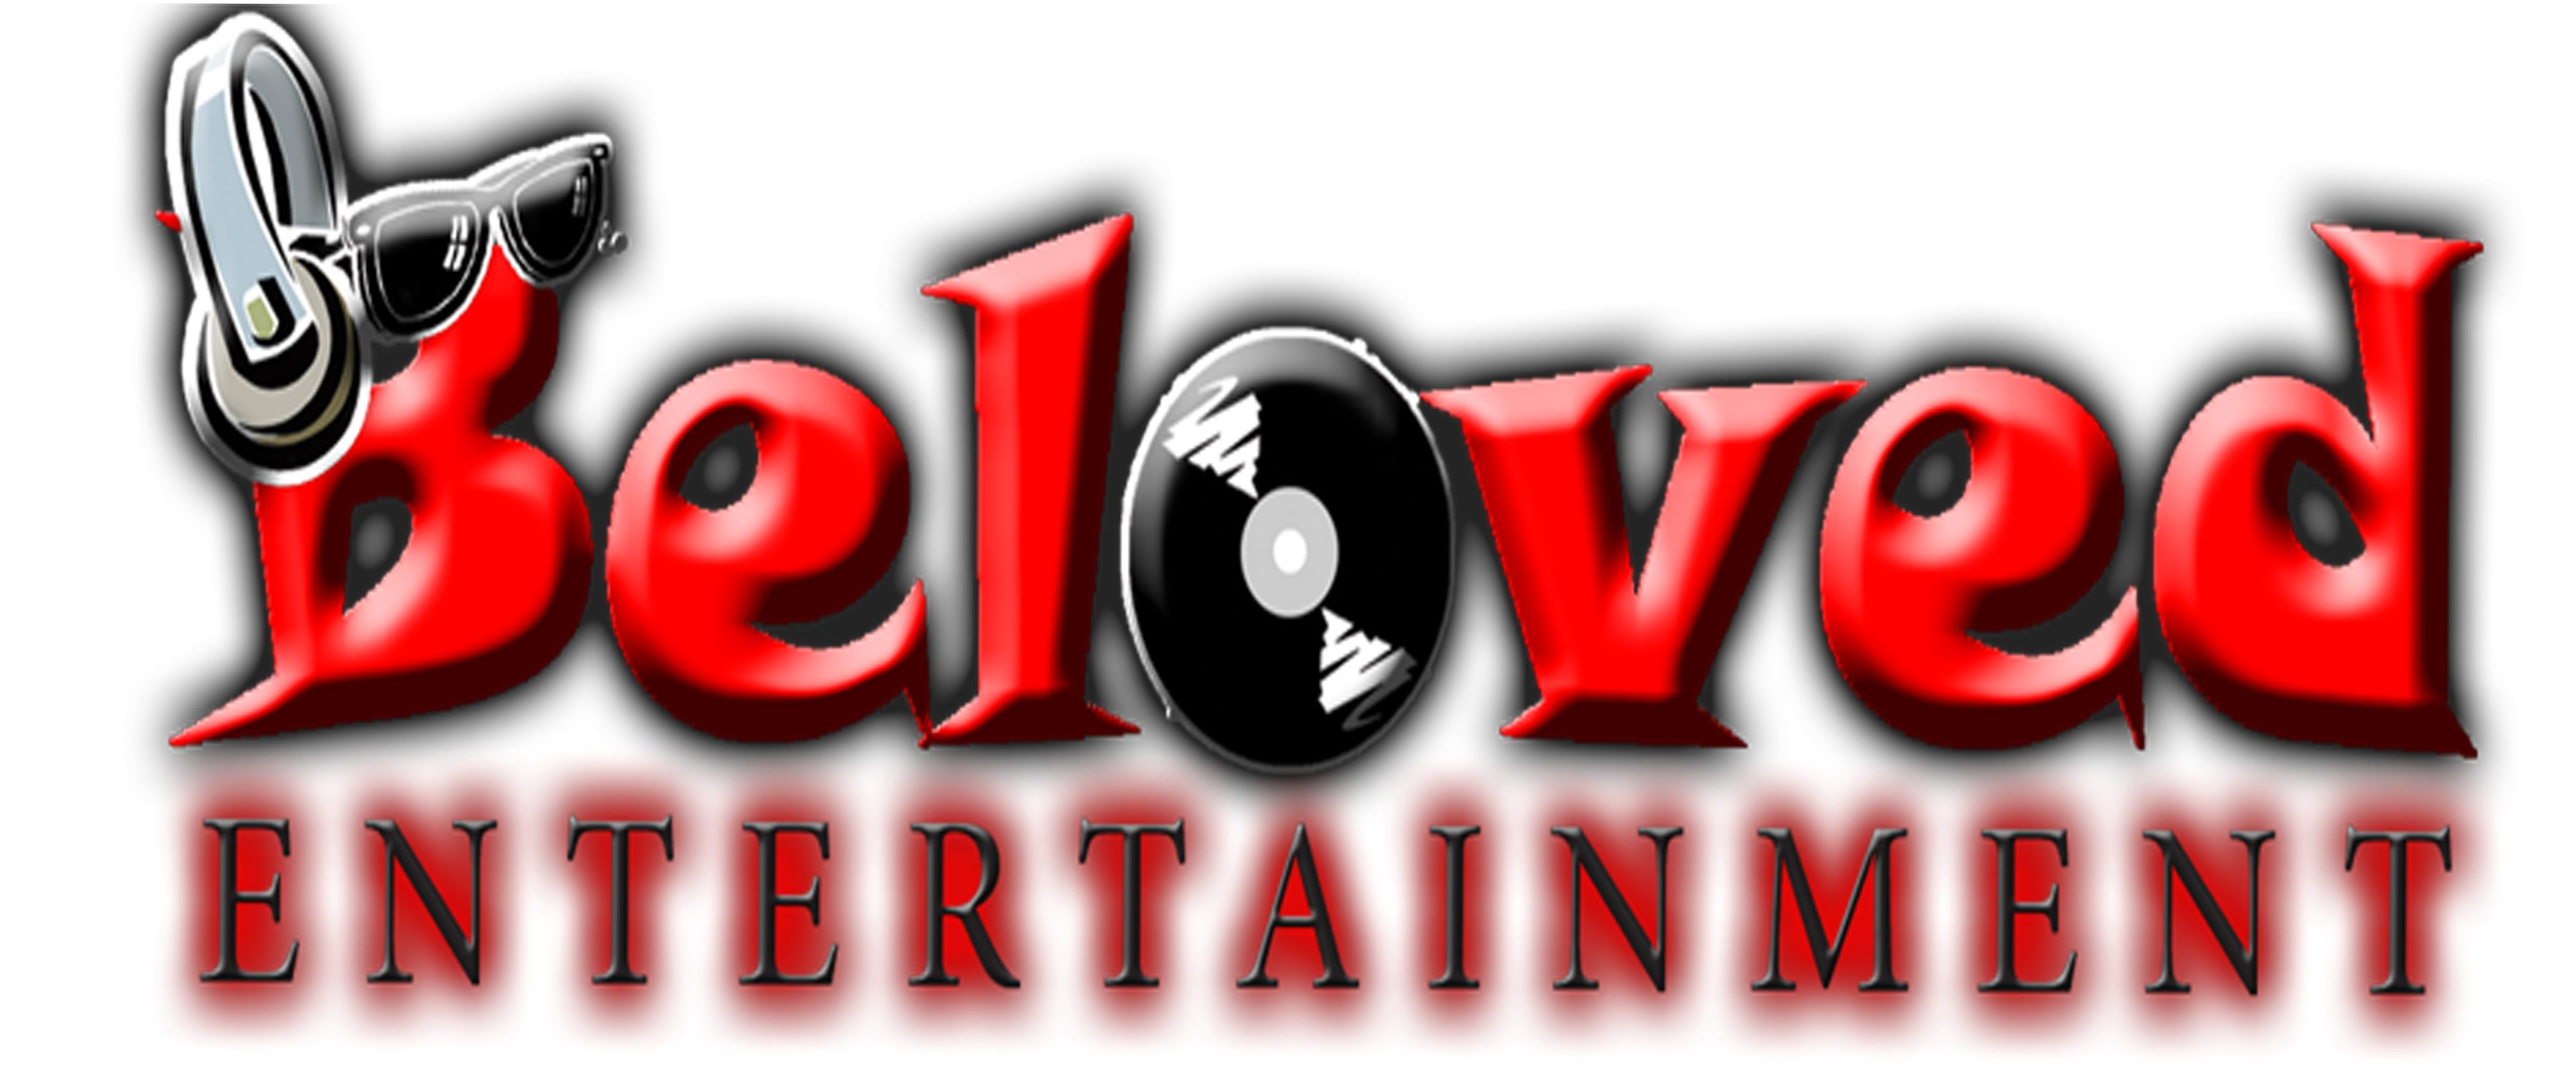 Beloved Entertainment